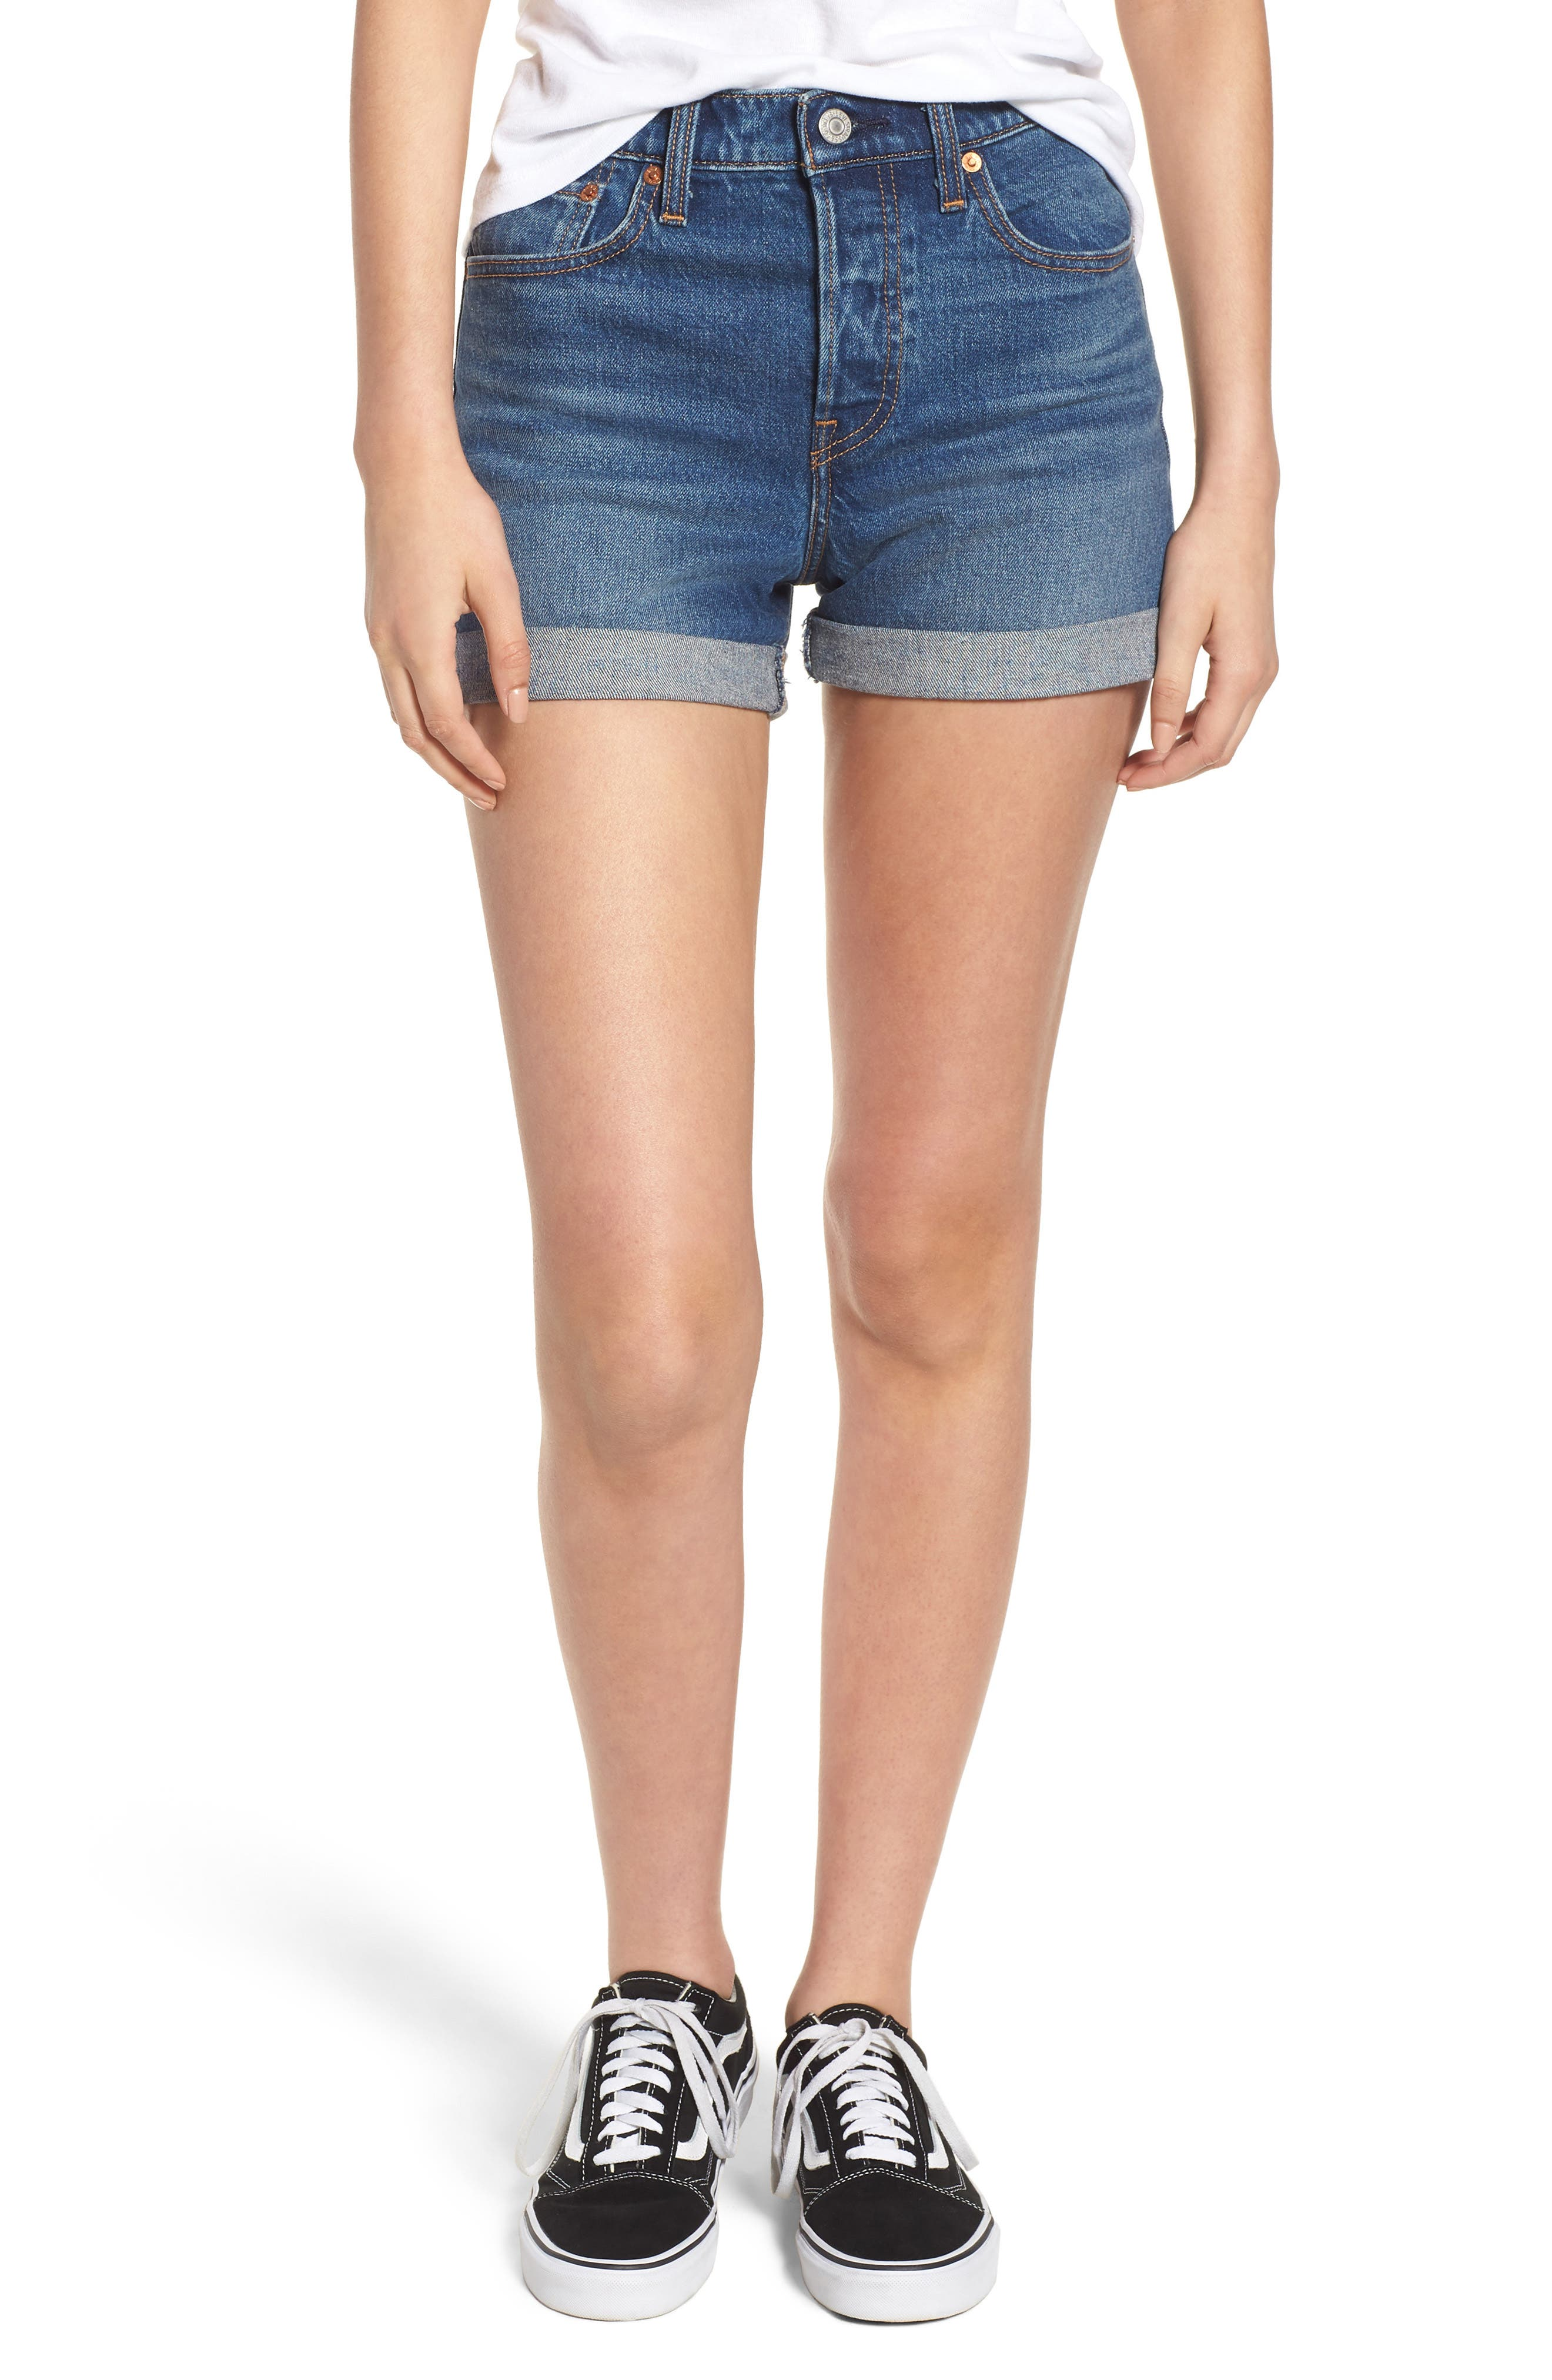 Wedgie Update Denim Shorts,                         Main,                         color, AUTHENTIC FAVORITE SHORT